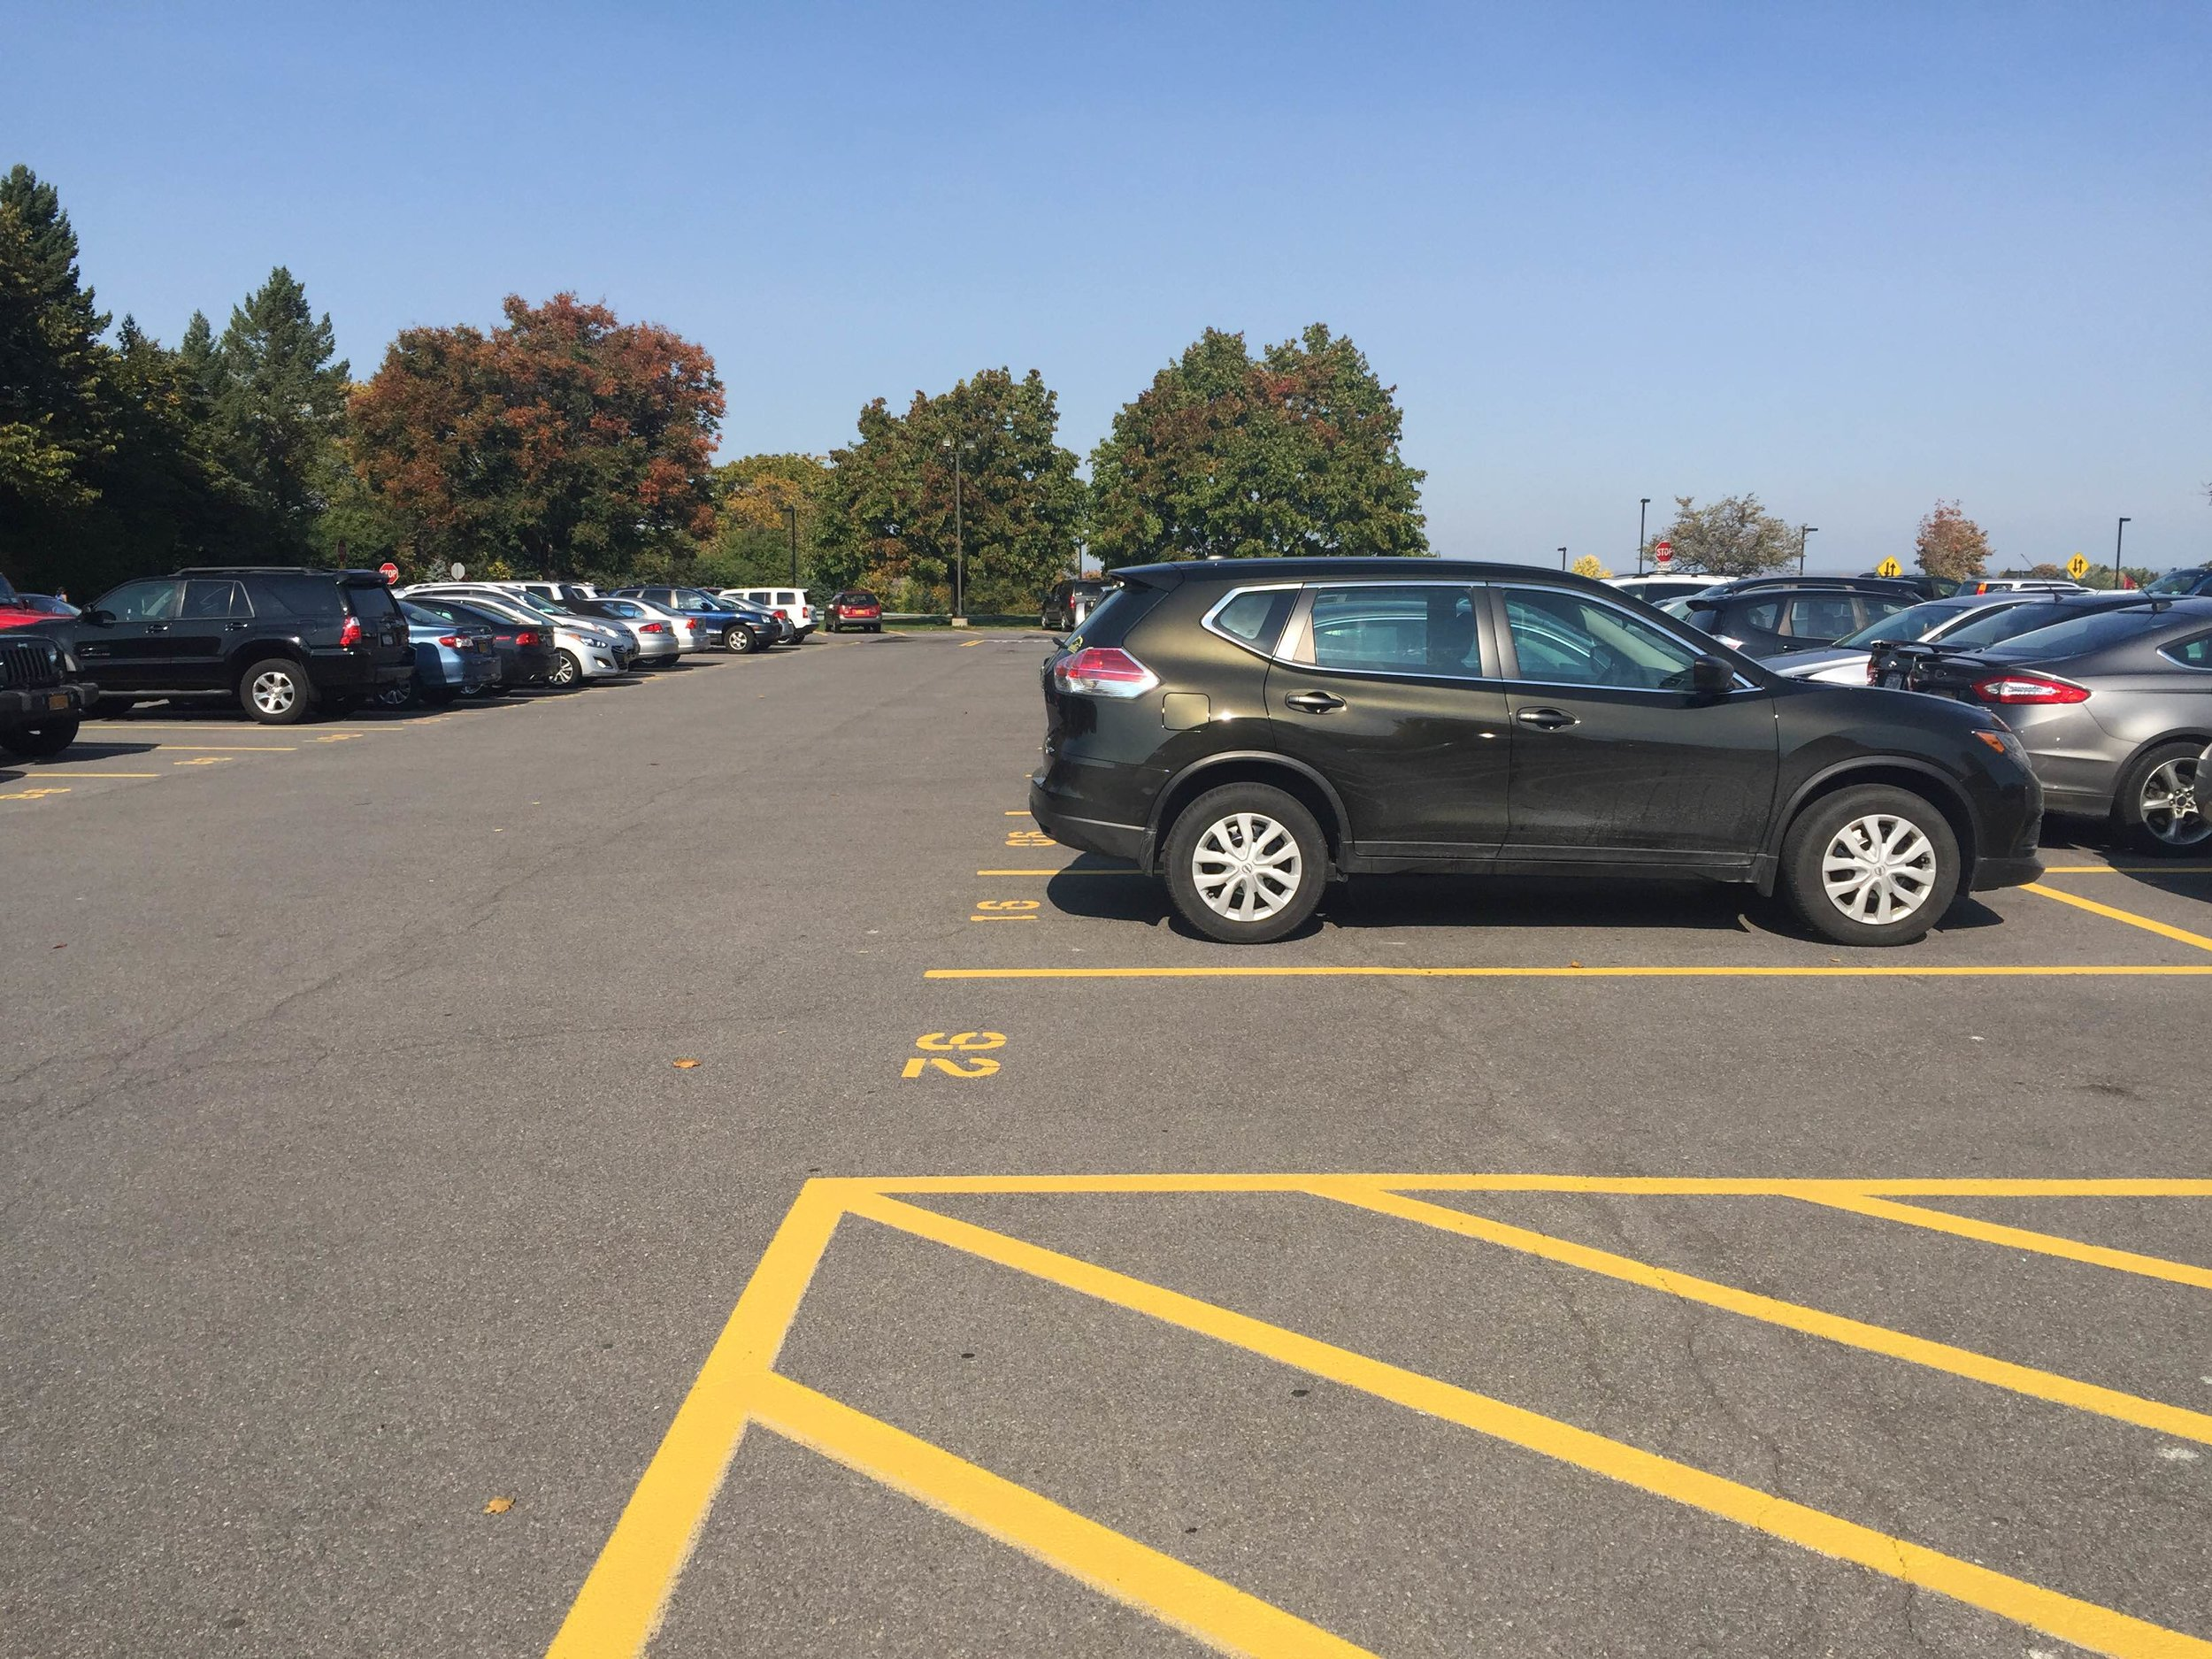 Each parking spot in the senior parking lot has a number (as pictured above) that corresponds to the number on the parking pass of a student.